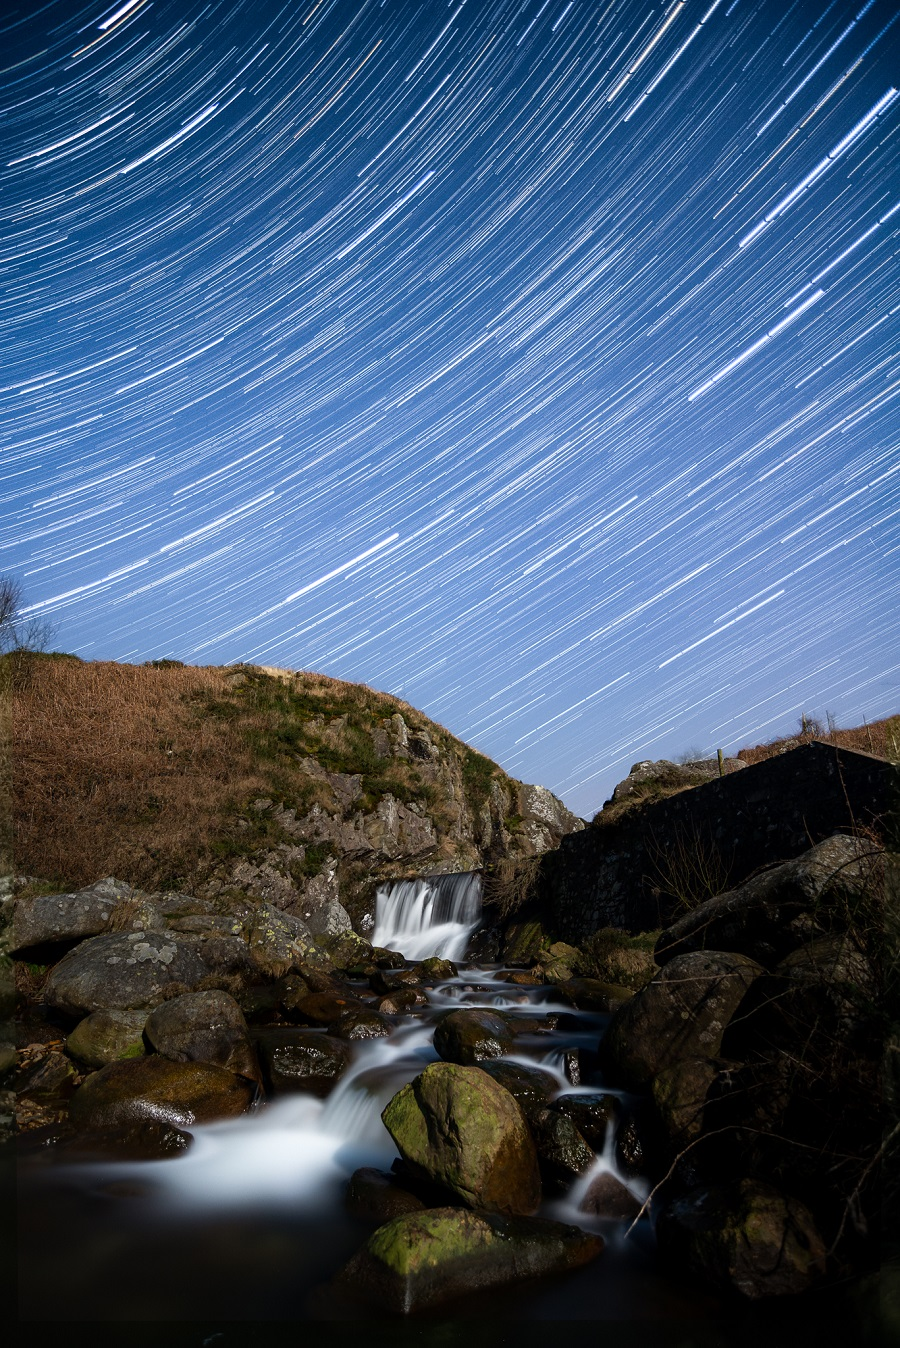 Star trail photography is a relatively simple advancement from the basics of astrophotography, and can be achieved with no additional photography equipment.